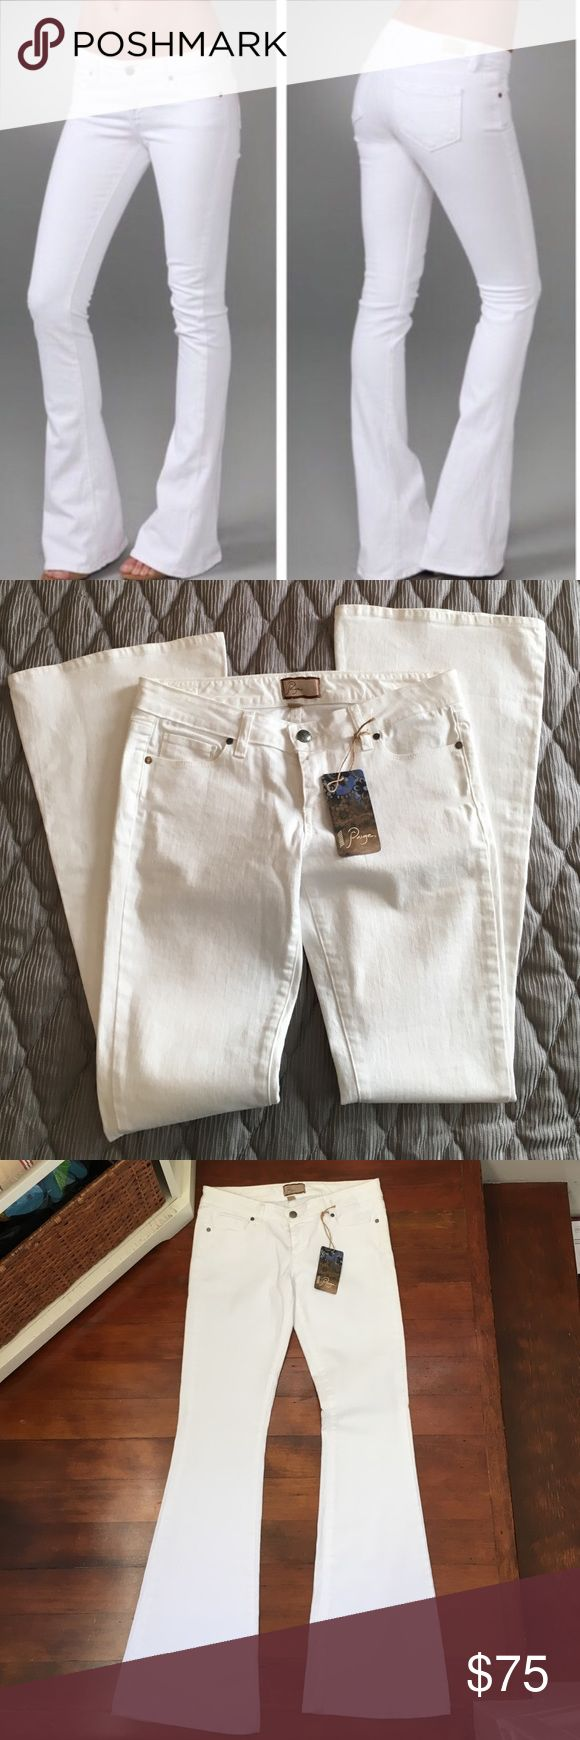 """⚜️SALE⚜️NWT! Paige Laurel Canyon Flare in White ULTRA WHITE A mid rise flare jean that hugs like a skinny down the leg and kicks out mid-calf into a perfect flare. This white jean that is perfect for spring / summer. Finished with faux pockets and Paige leather patch.   Front Rise: 8 3/8"""" Inseam: 34"""" Leg Opening: 21 3/4"""" 10 oz Fabric 92% Cotton, 6% Elastomultiester, 2% Elastane Paige Jeans Jeans"""